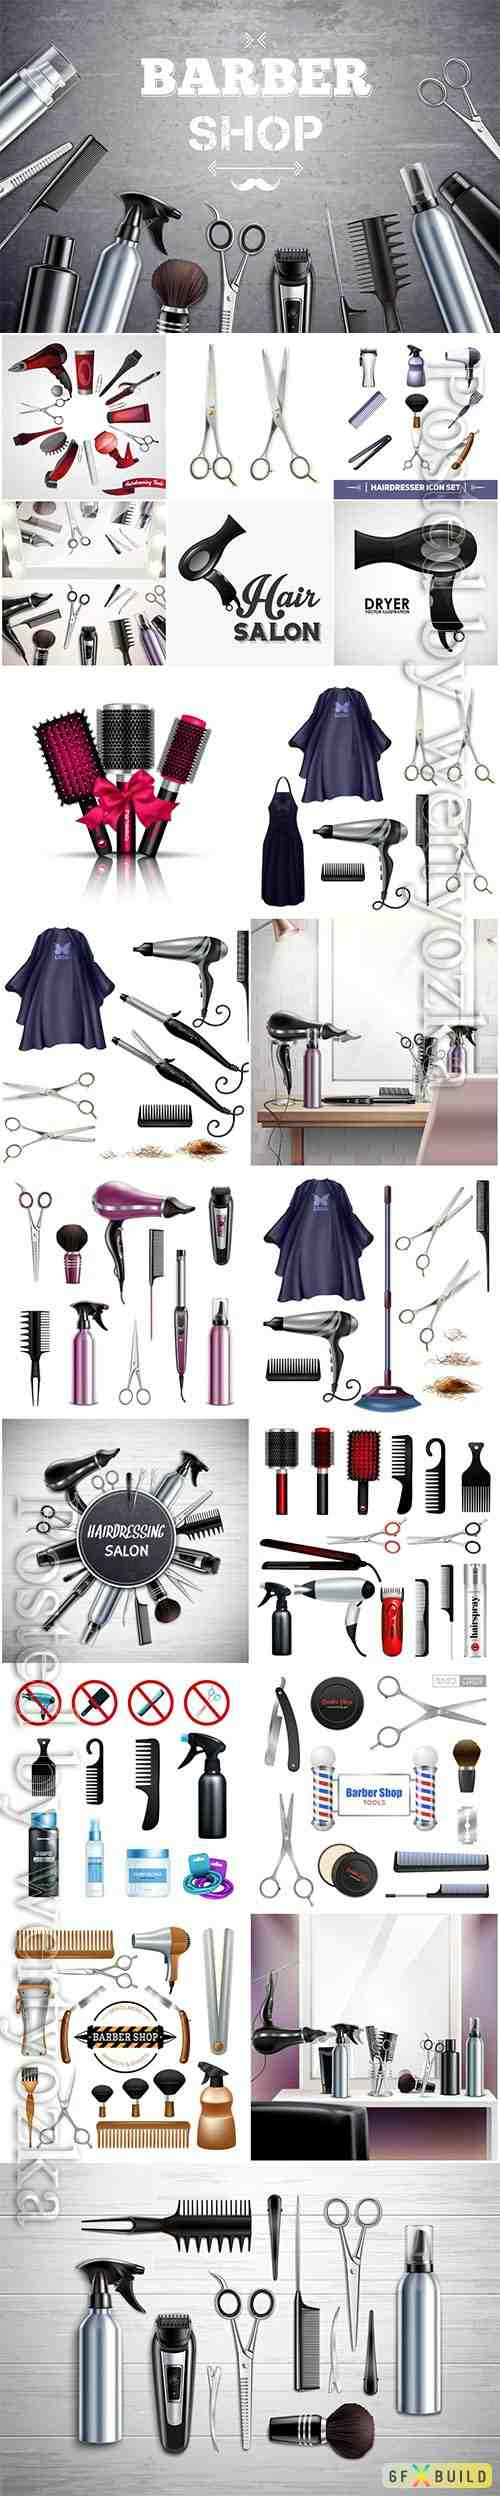 Barbershop hairdresser tools and accessories vector illustration